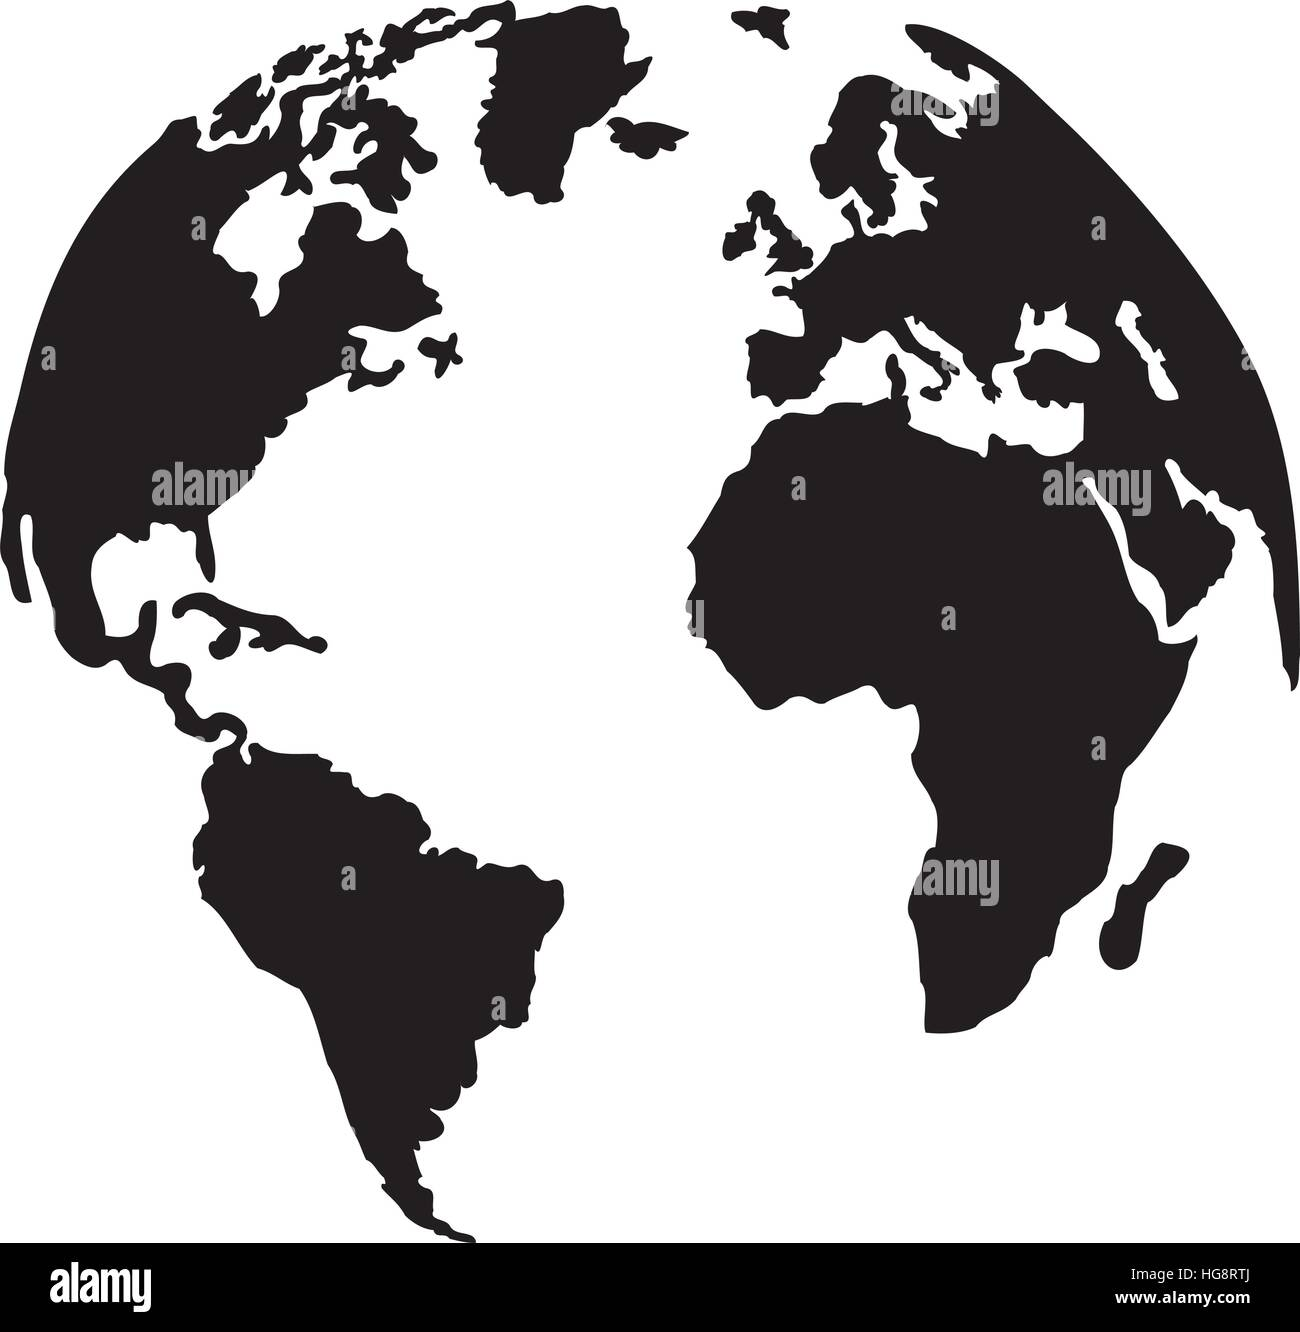 Globe planet earth with silhouette of the continents stock vector globe planet earth with silhouette of the continents gumiabroncs Images